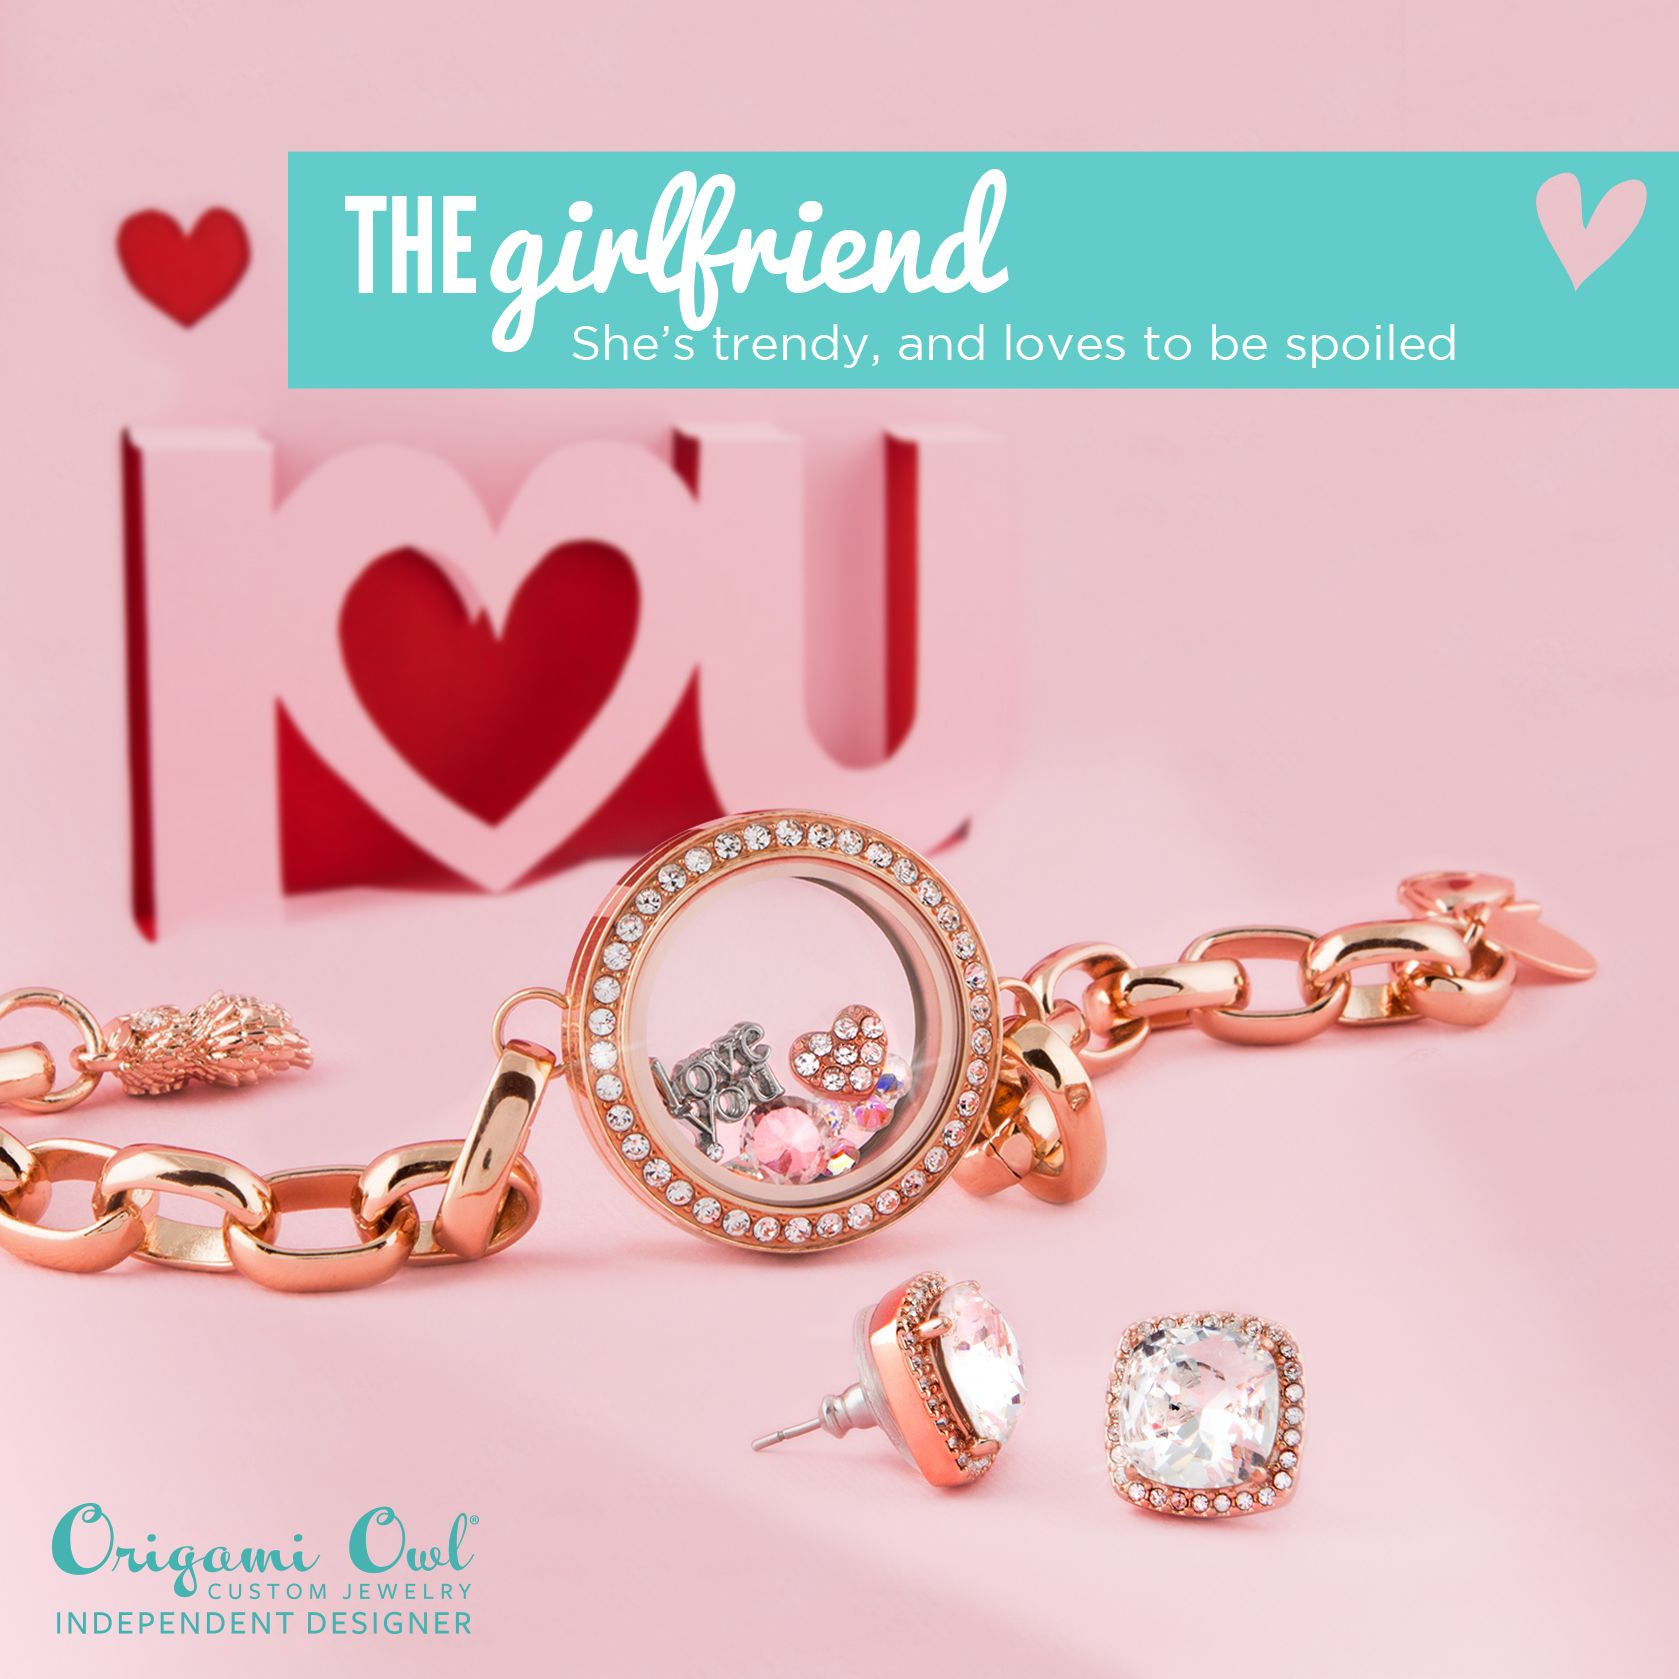 Beautiful valentines day gift for your girlfriend from origami beautiful valentines day gift for your girlfriend from origami owl custom jewelry follow maggie stephens jeuxipadfo Images